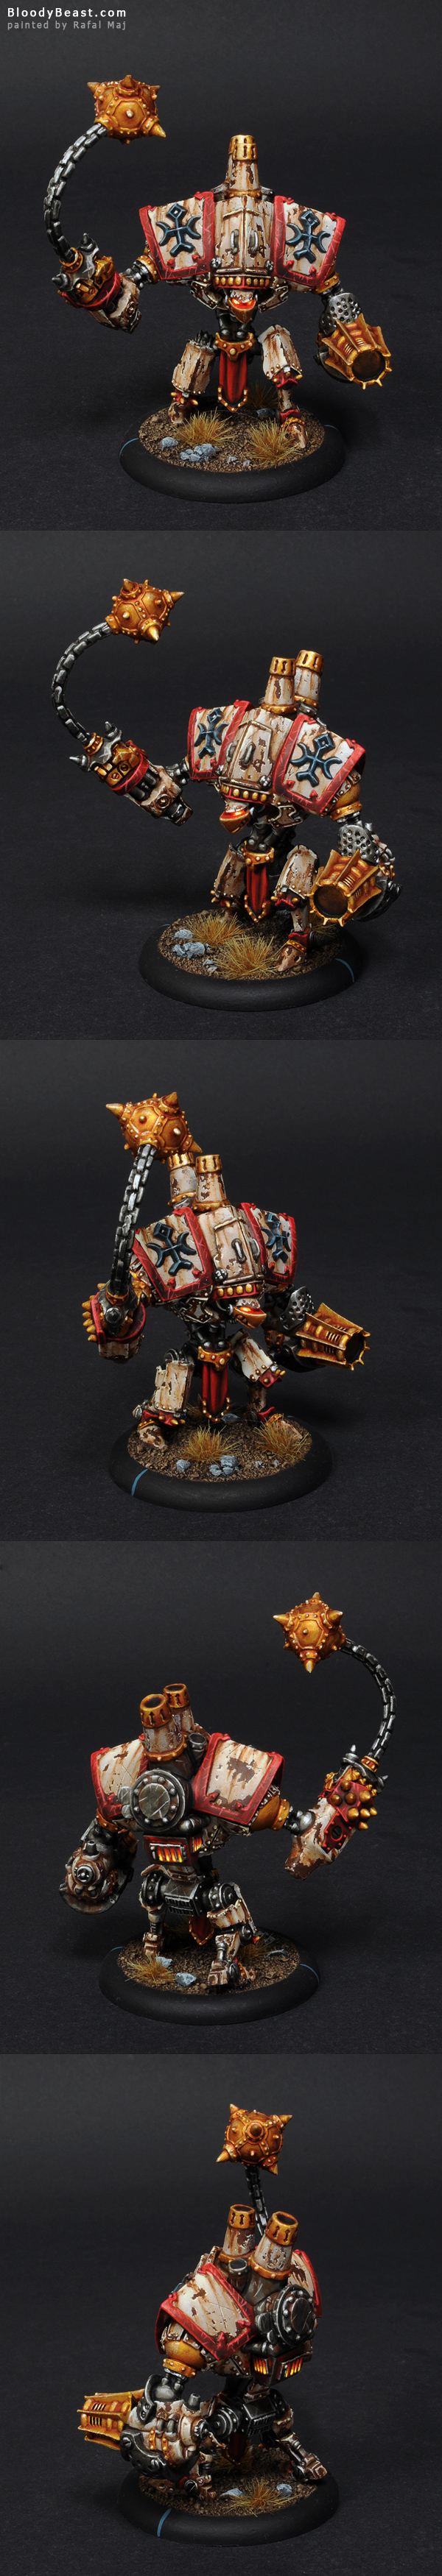 Protectorate of Menoth Vanquisher painted by Rafal Maj (BloodyBeast.com)